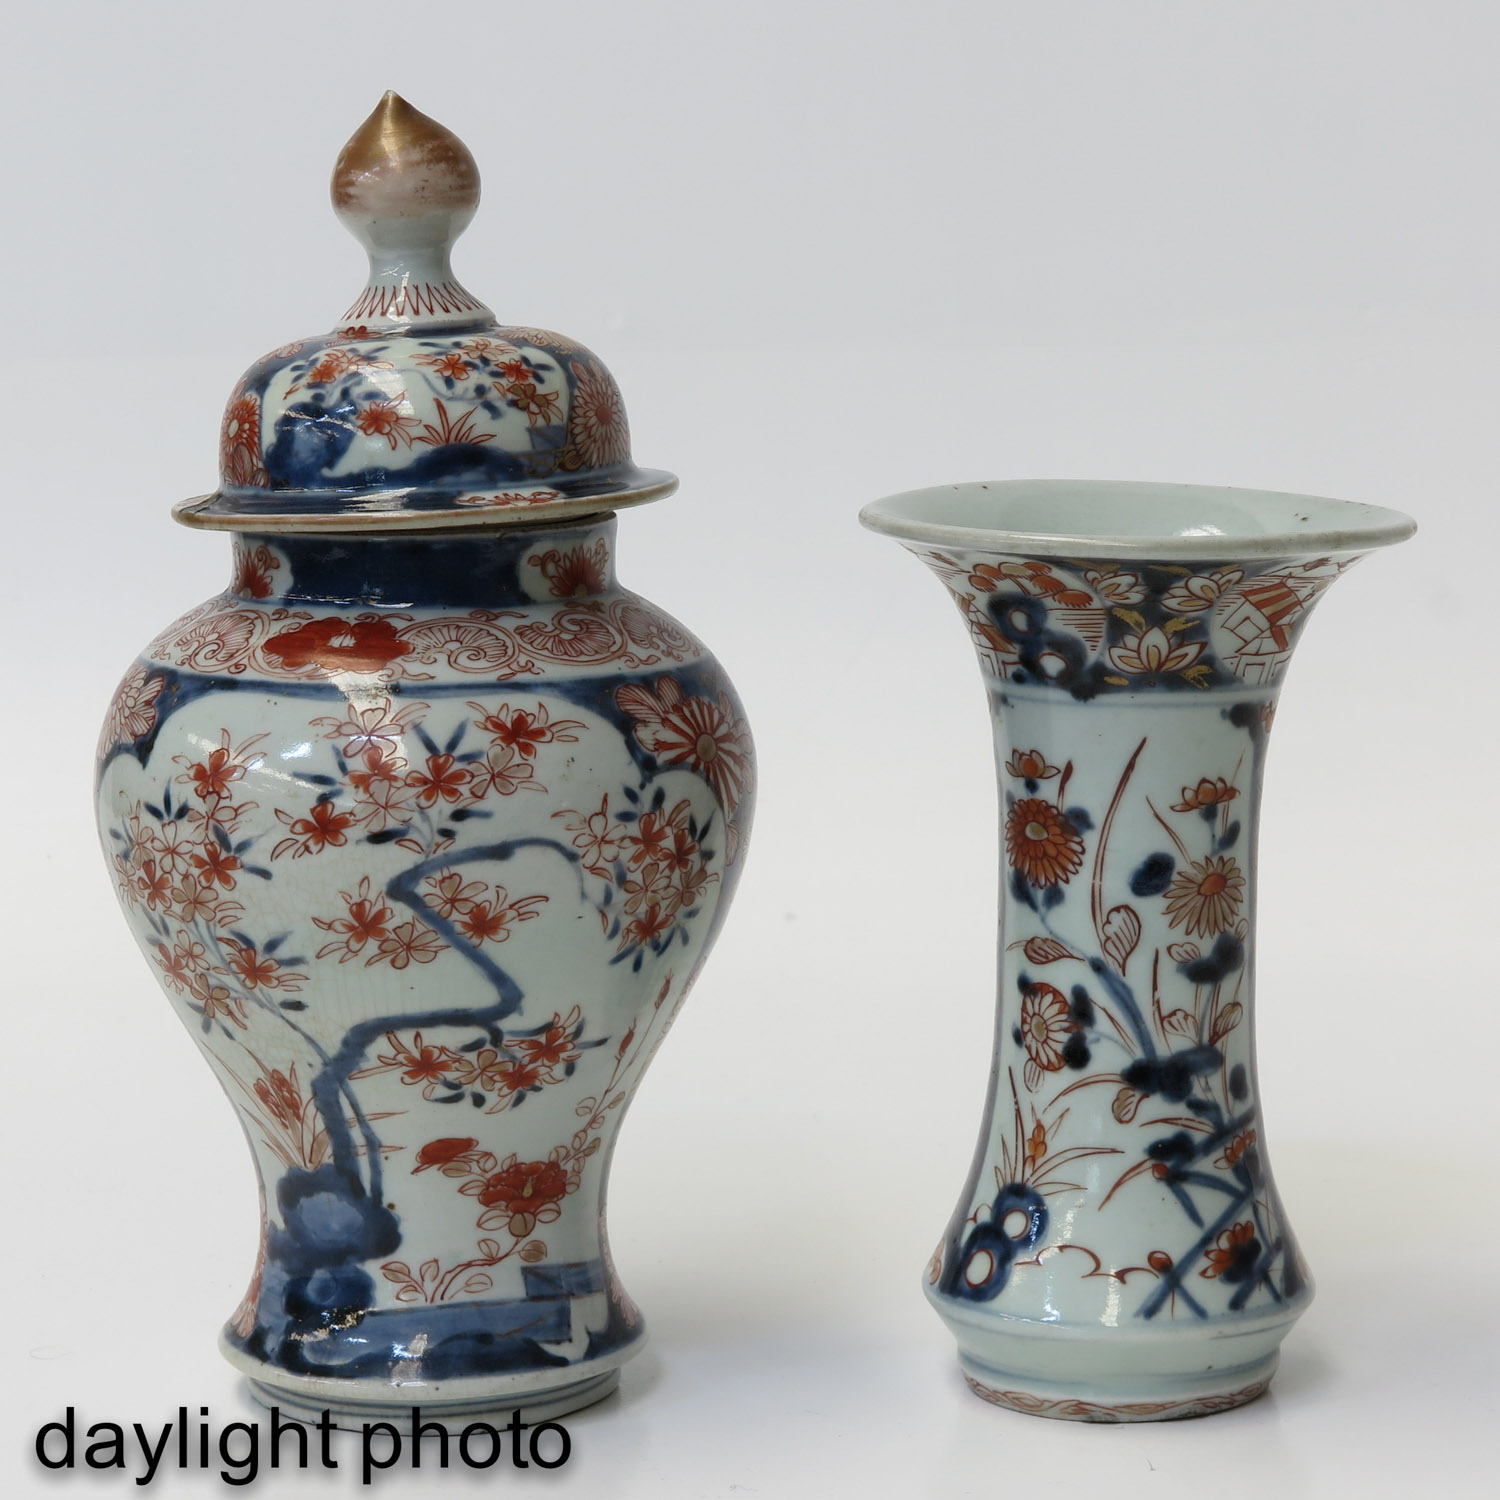 A 5 Piece Imari Garniture Set - Image 7 of 9